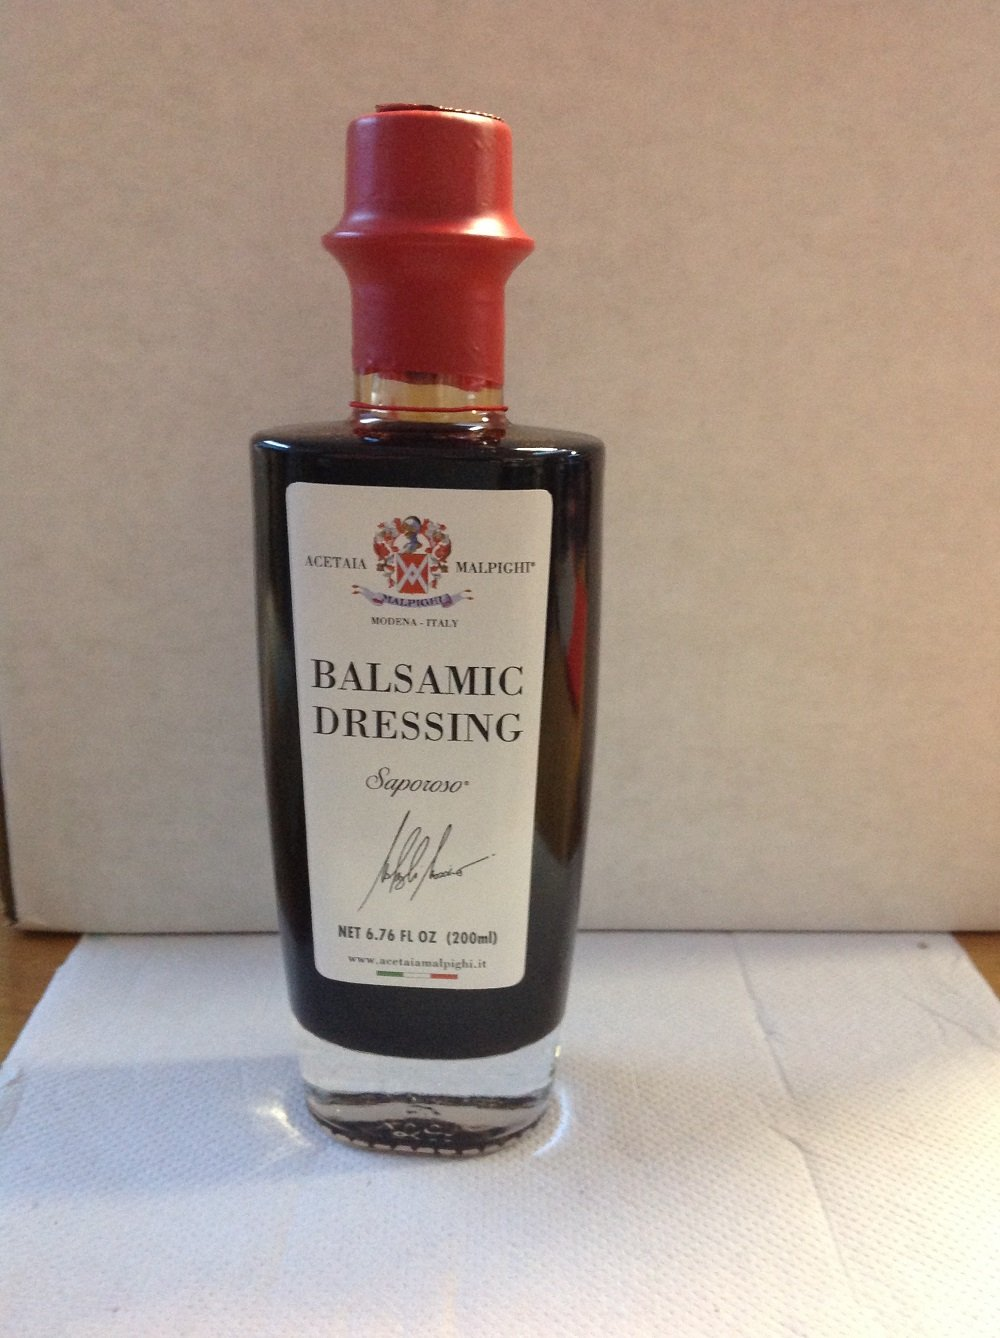 "Balsámic Dressing ""Saporoso"" 6 years old -3,4 oz. (100 ml) 2 Italian Balsamic Condiment 3,4 oz (100 ml) 6 years to mature into a oak barrel wood casks Suitable on all type of vegetables and on roast meat"